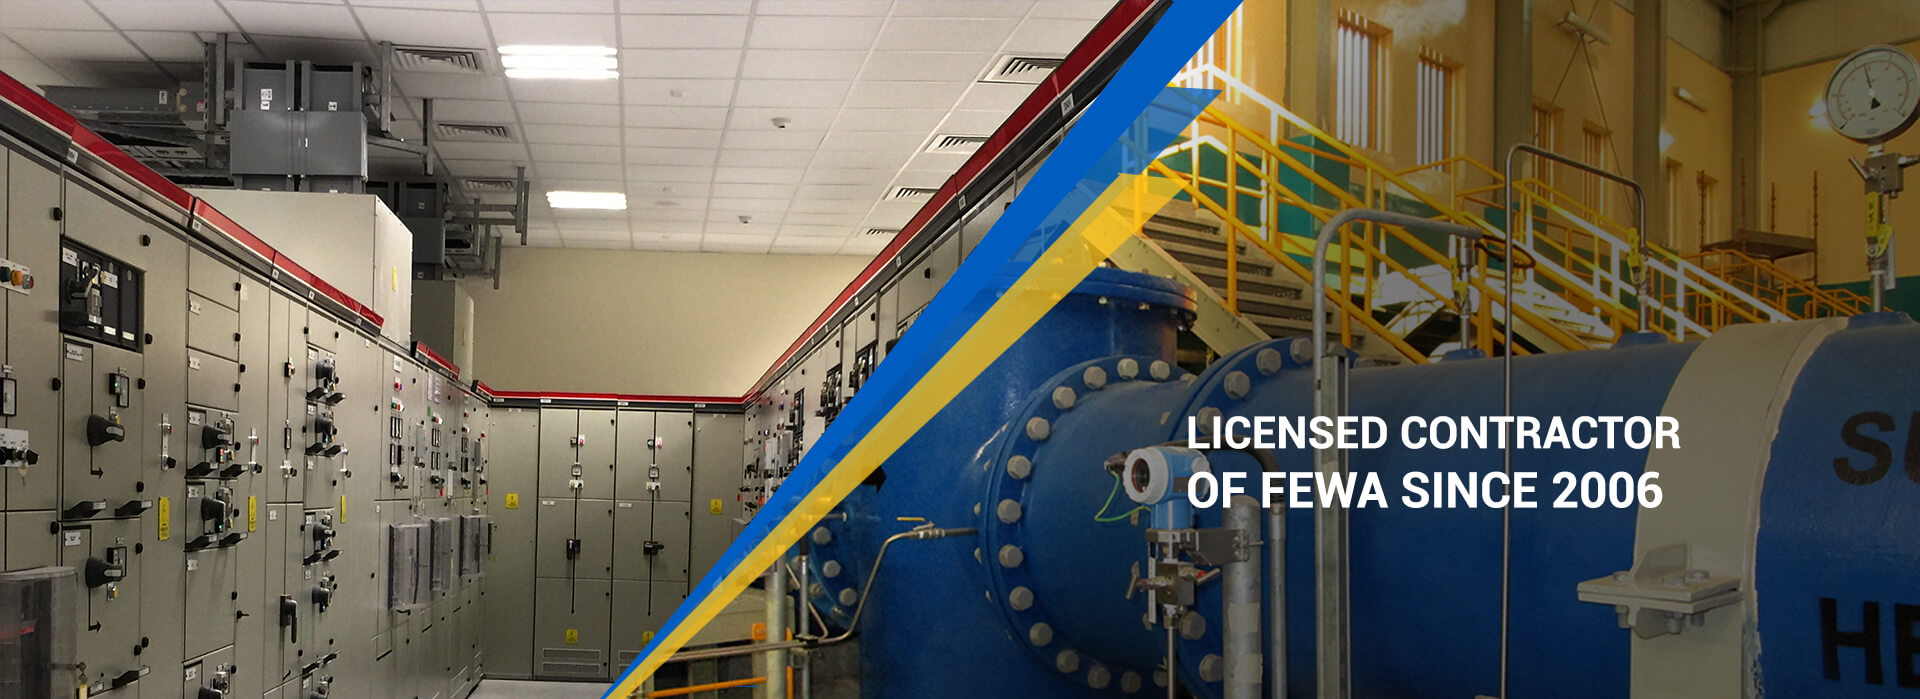 licensed-contractor-of-fewa-since-2006